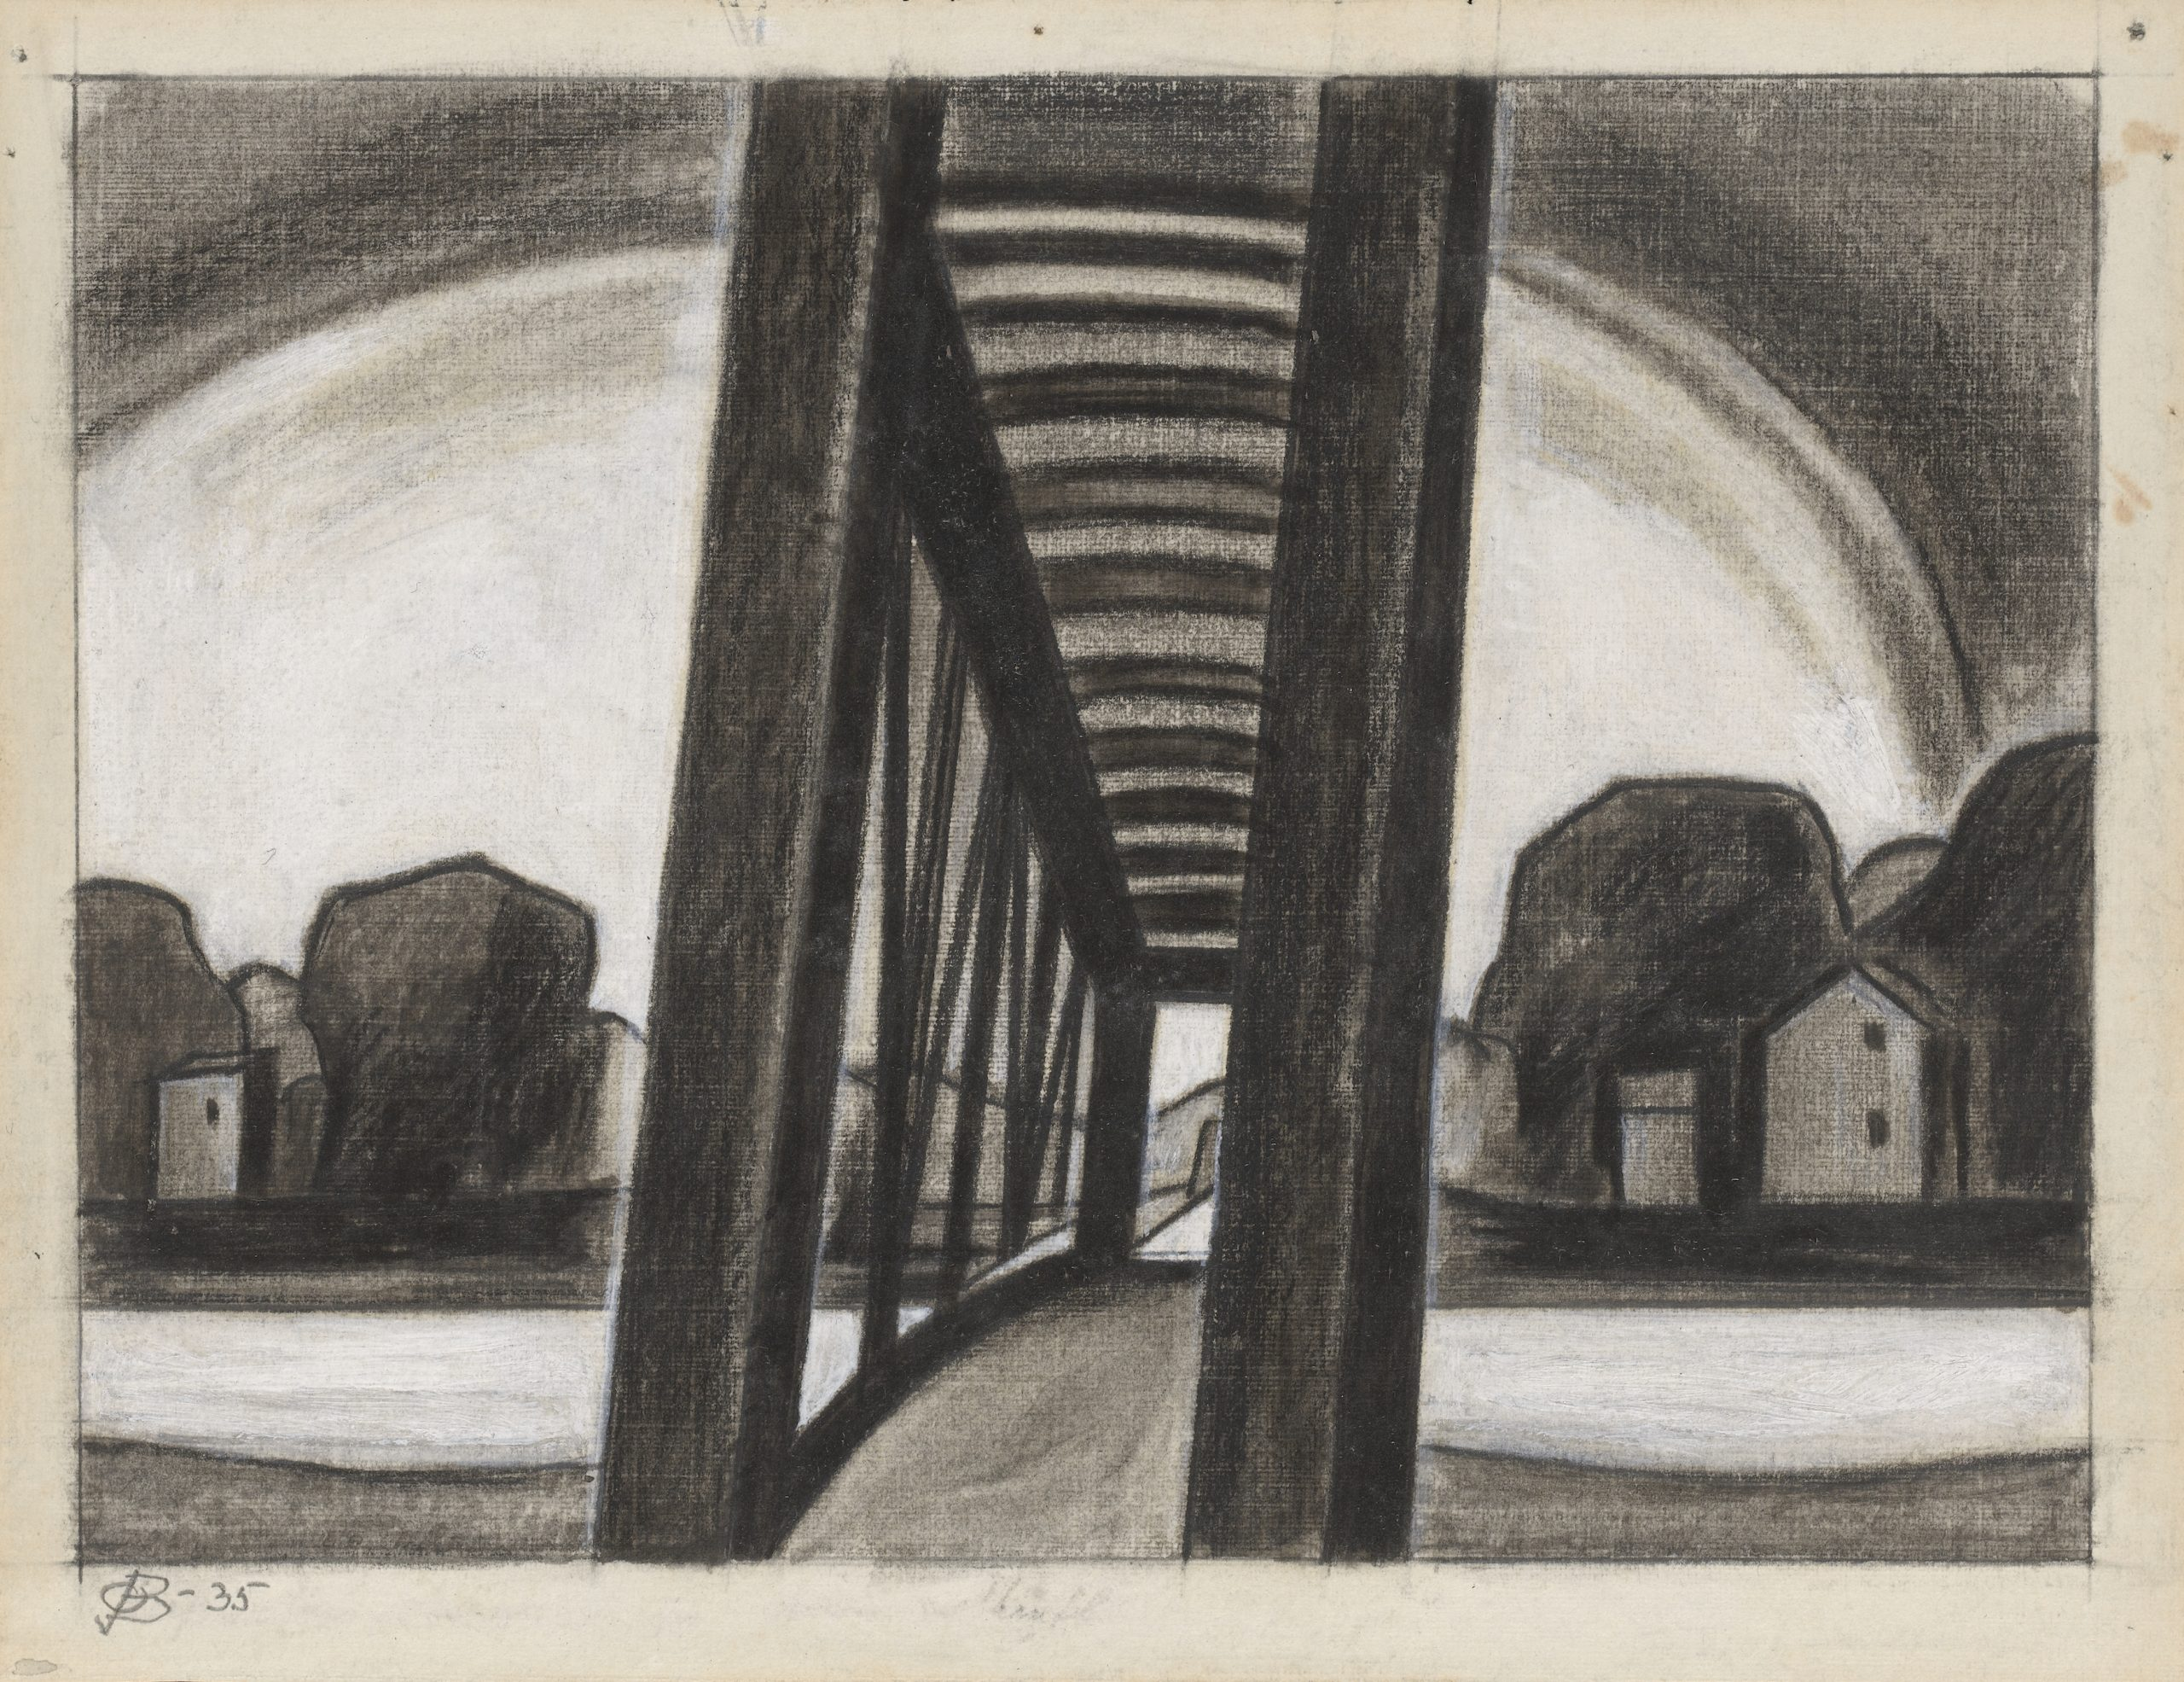 Landscape featuring trees and houses seen through the center of a bridge.